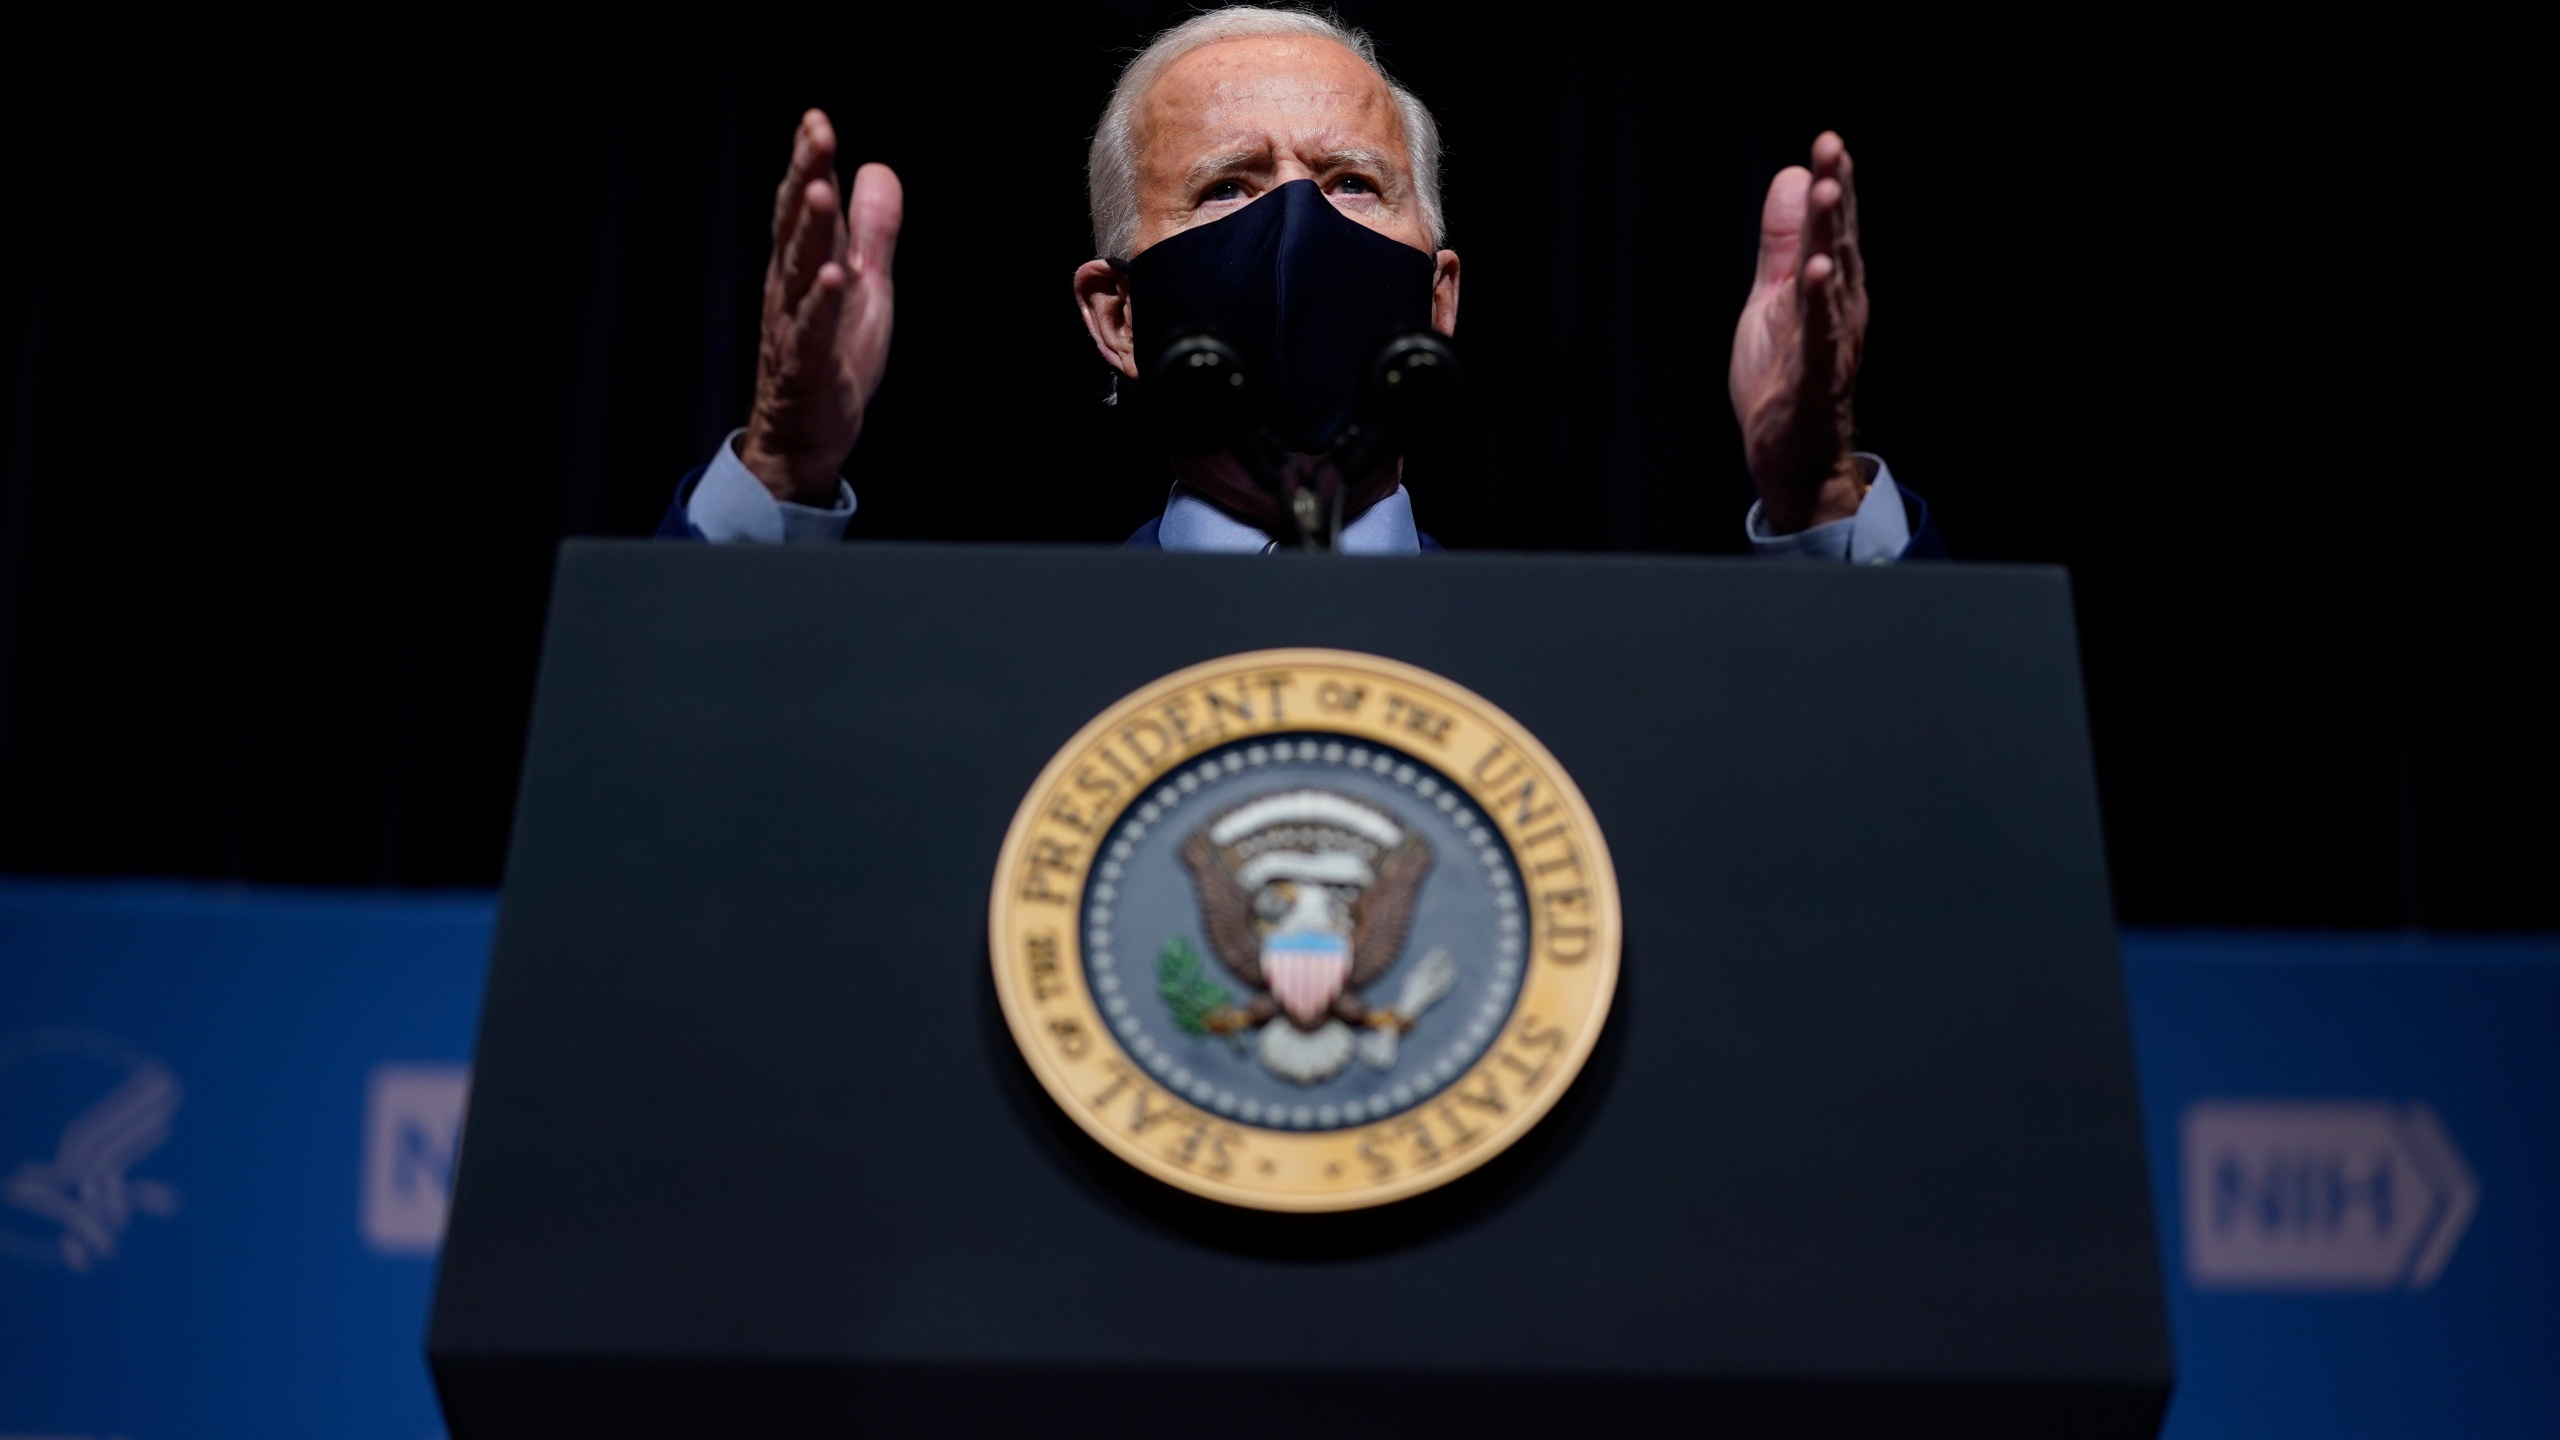 President Joe Biden speaks during a visit to the Viral Pathogenesis Laboratory at the National Institutes of Health, Thursday, Feb. 11, 2021, in Bethesda, Md. (AP Photo/Evan Vucci)